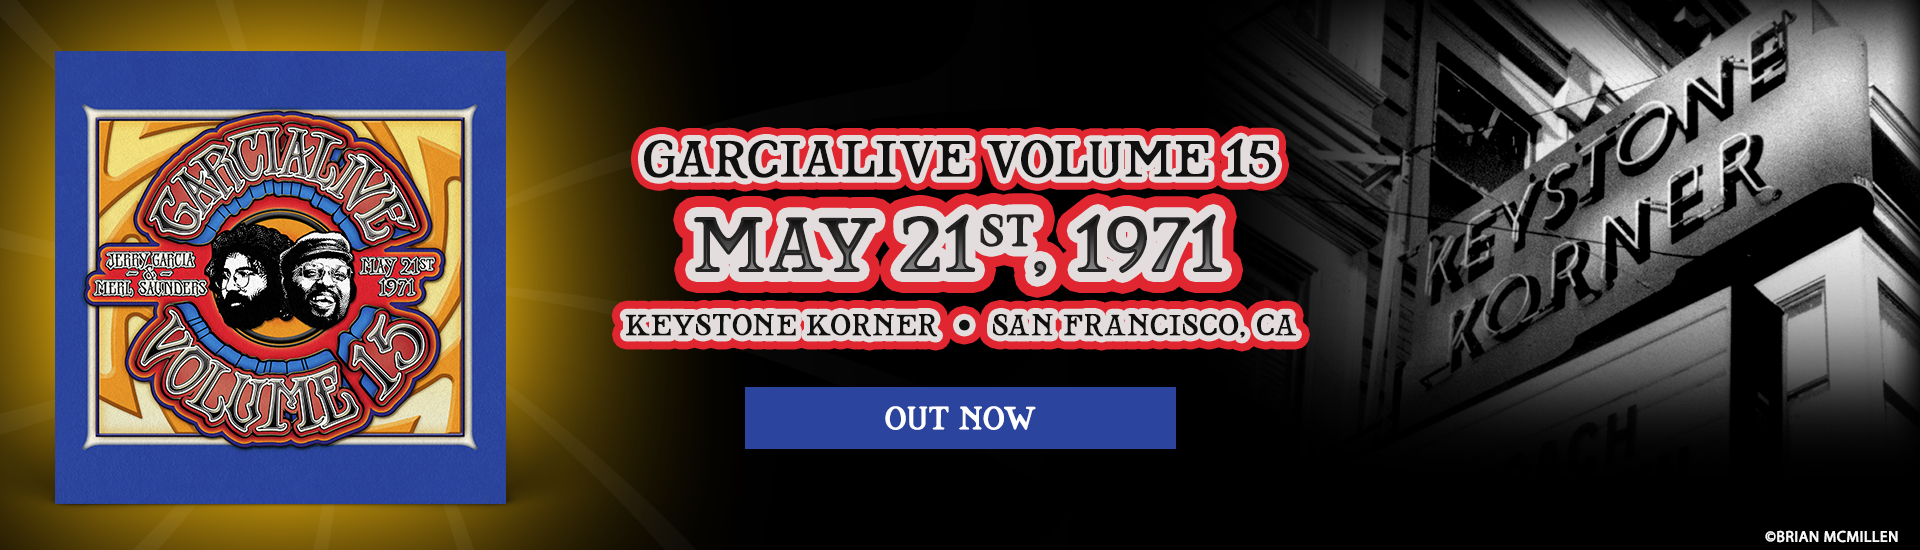 GarciaLive Volume 15 Out Now